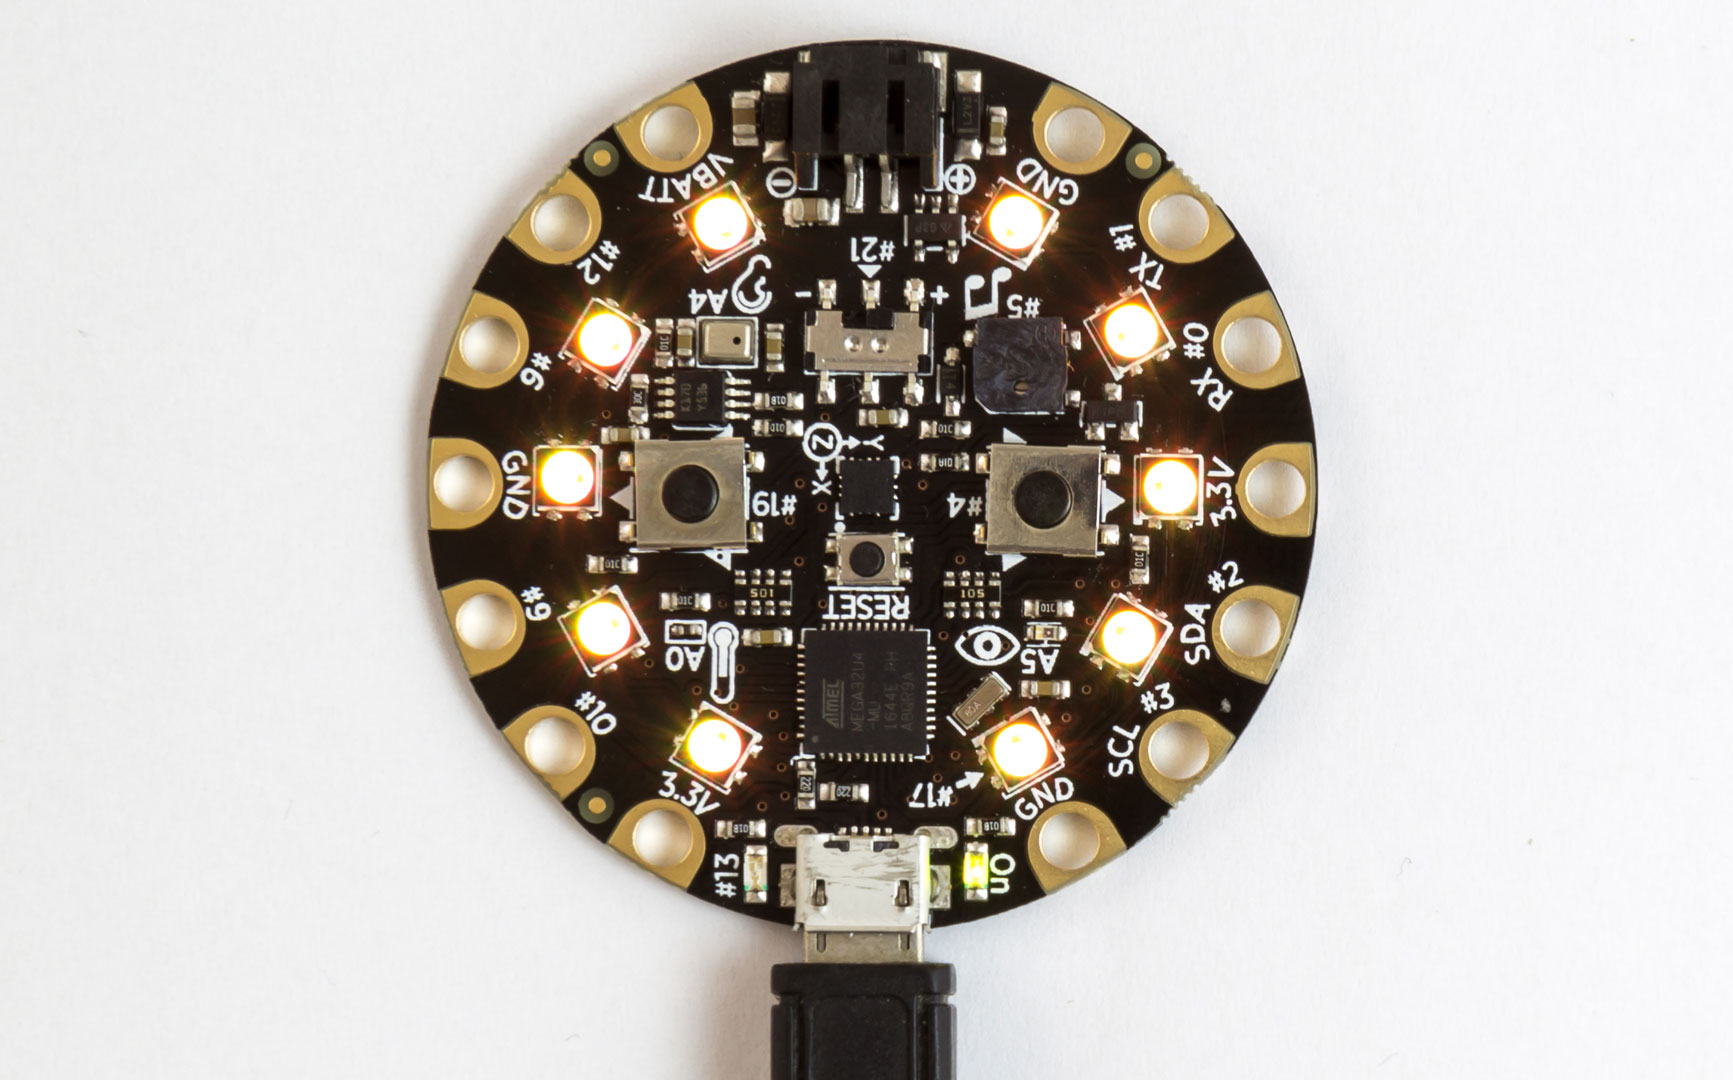 Circuit playground developer edition 4 s